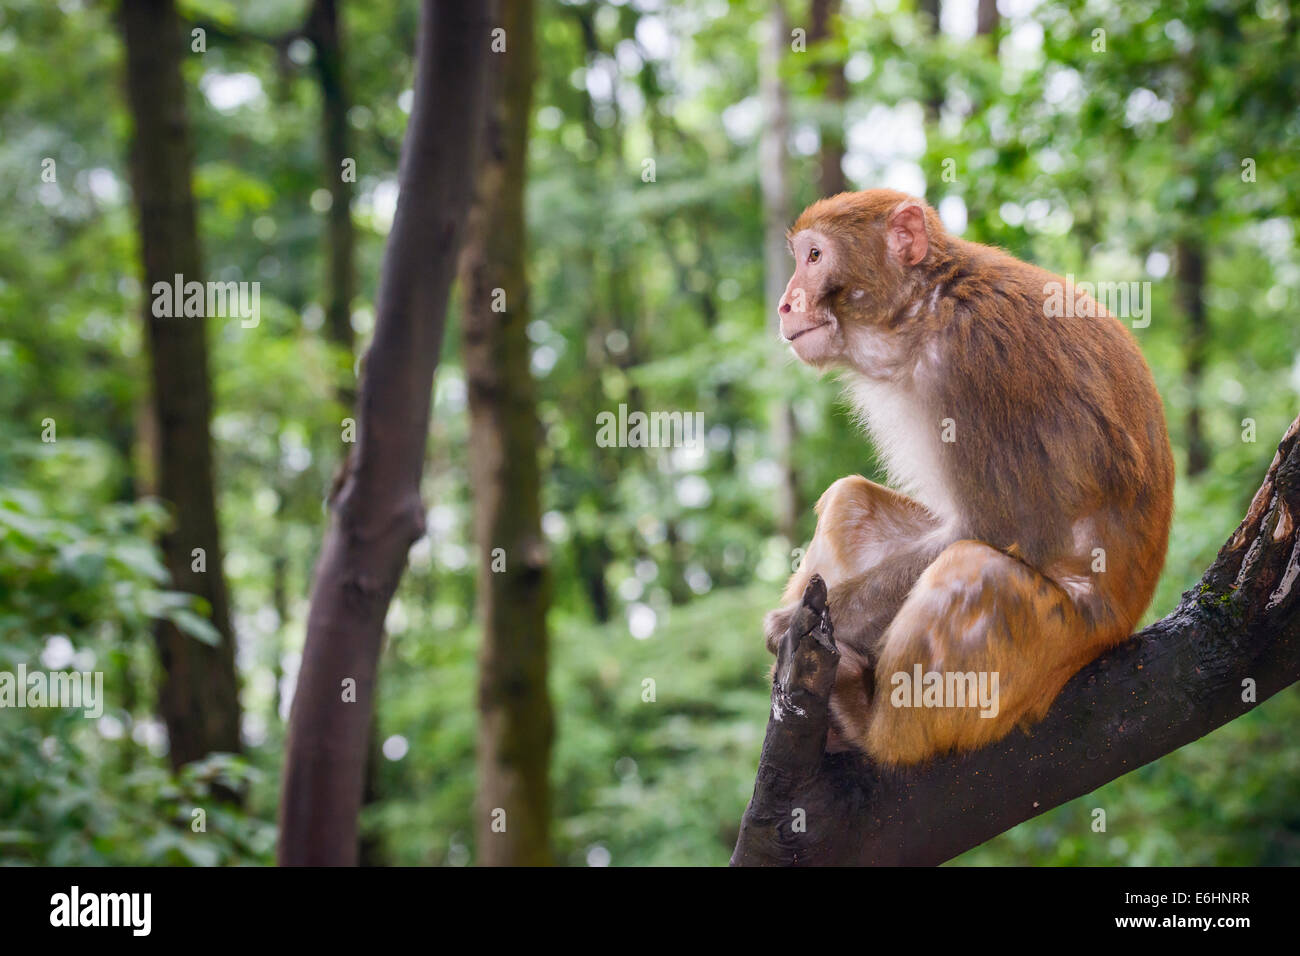 Macaque in Guiyang, China - Stock Image